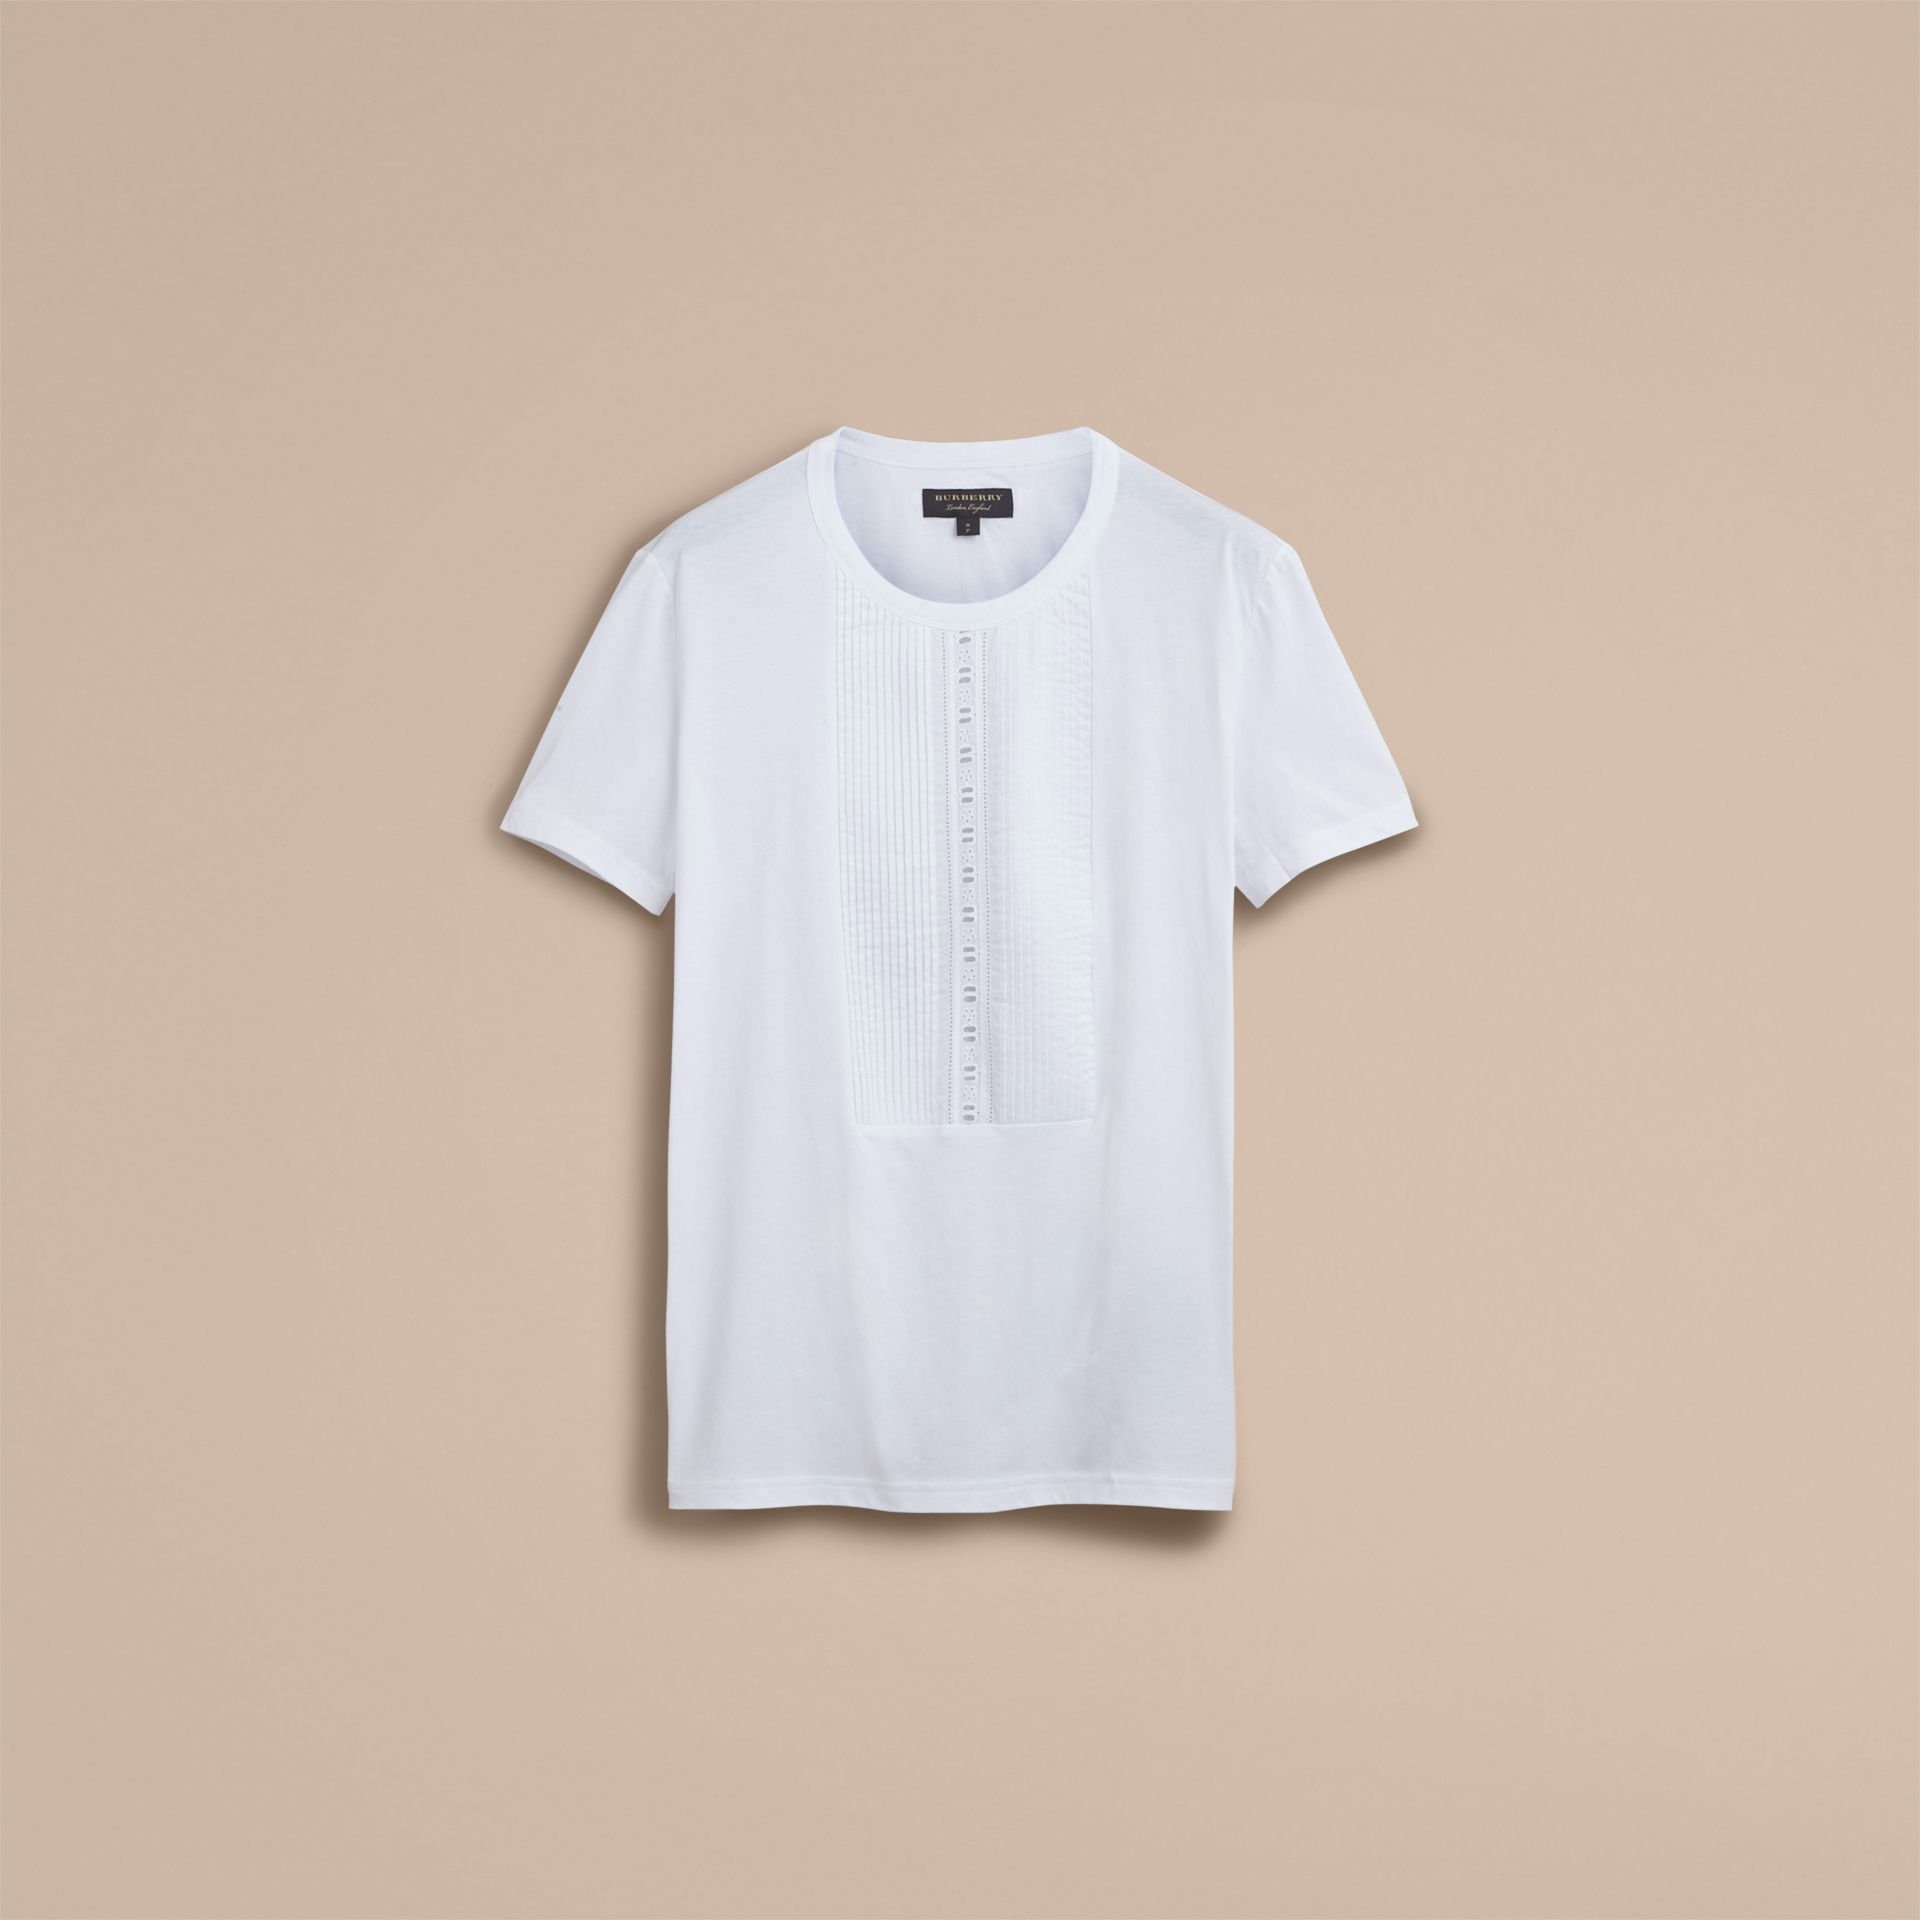 Pintuck and Lace Bib Detail Cotton T-shirt in White - Men | Burberry - gallery image 4